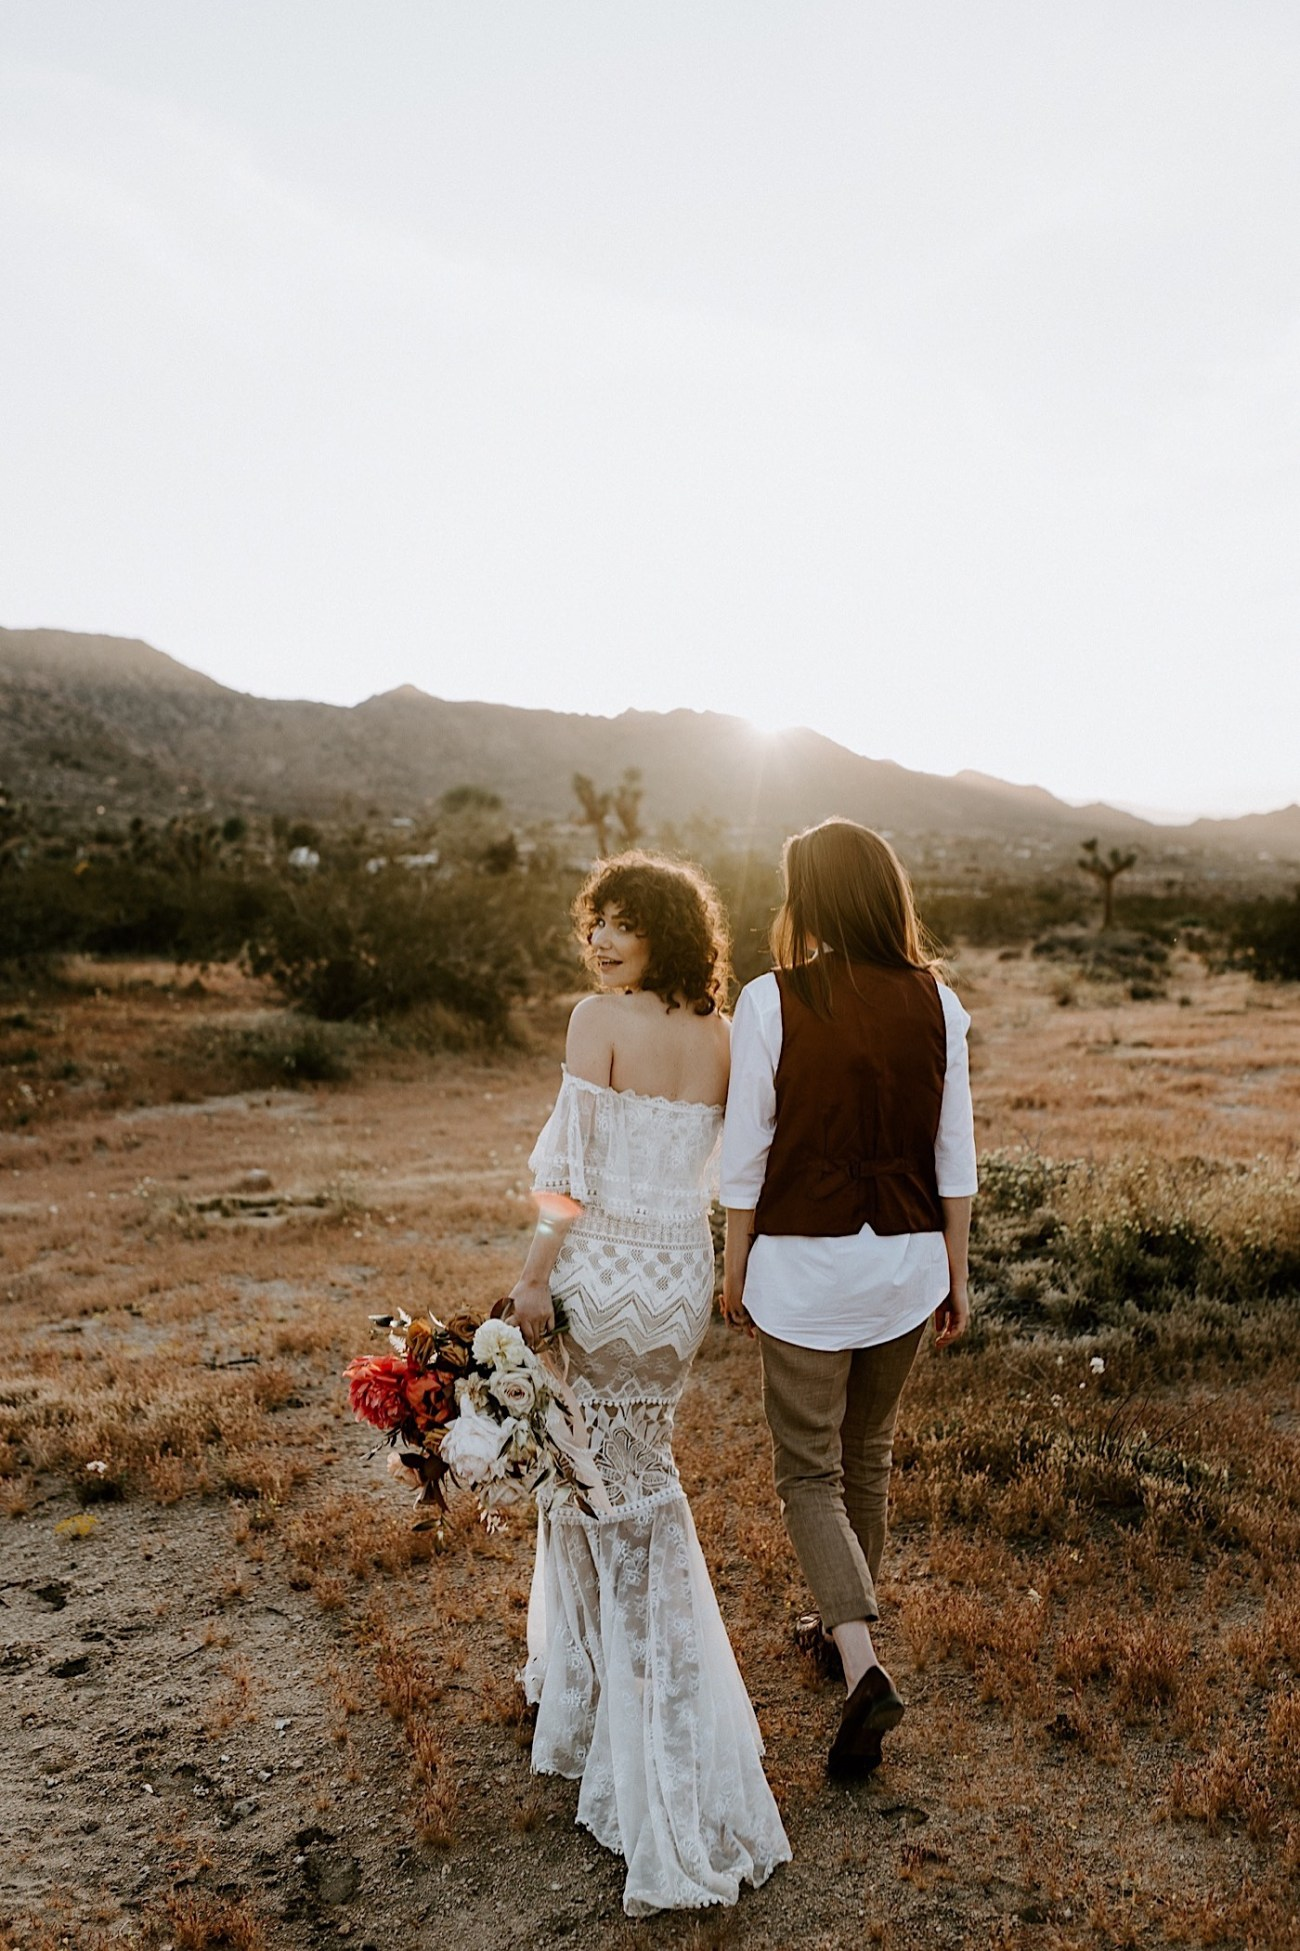 Same Sex Elopement in Joshua Tree, bride and bride standing next to a Joshua Tree. California Wedding Photographer.